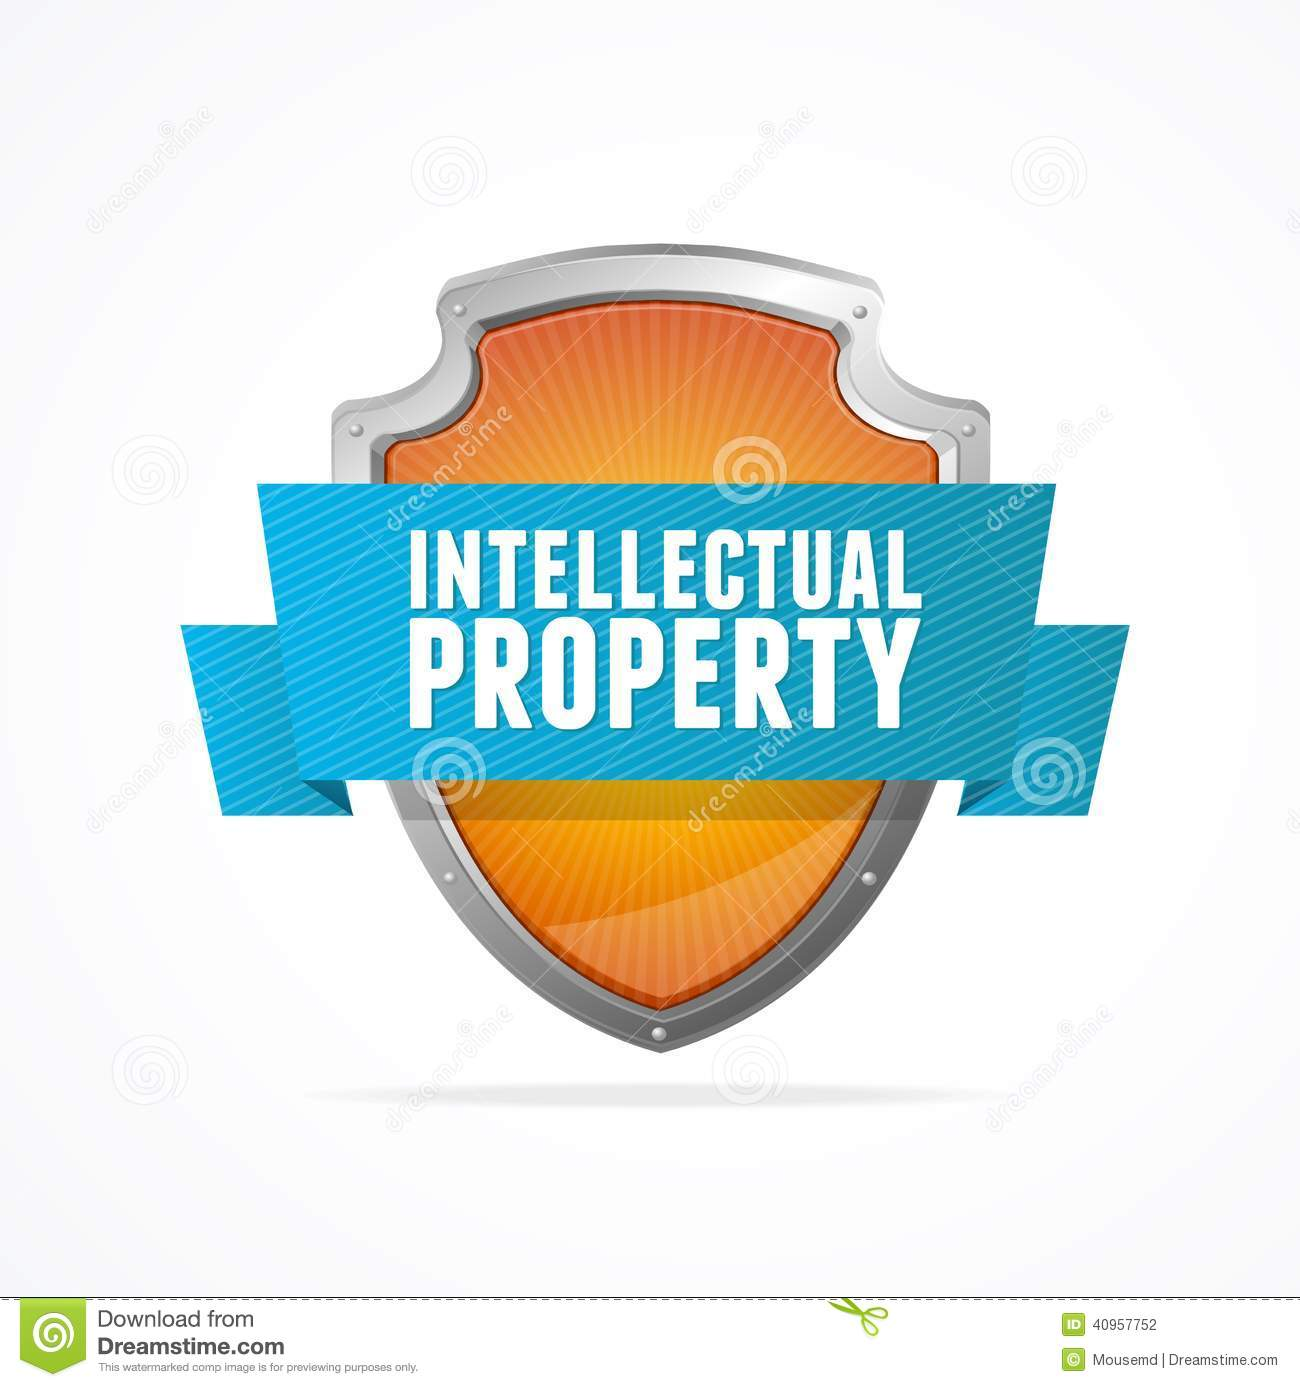 Itellectual Property: Intellectual Property Protect Shield On White Stock Vector